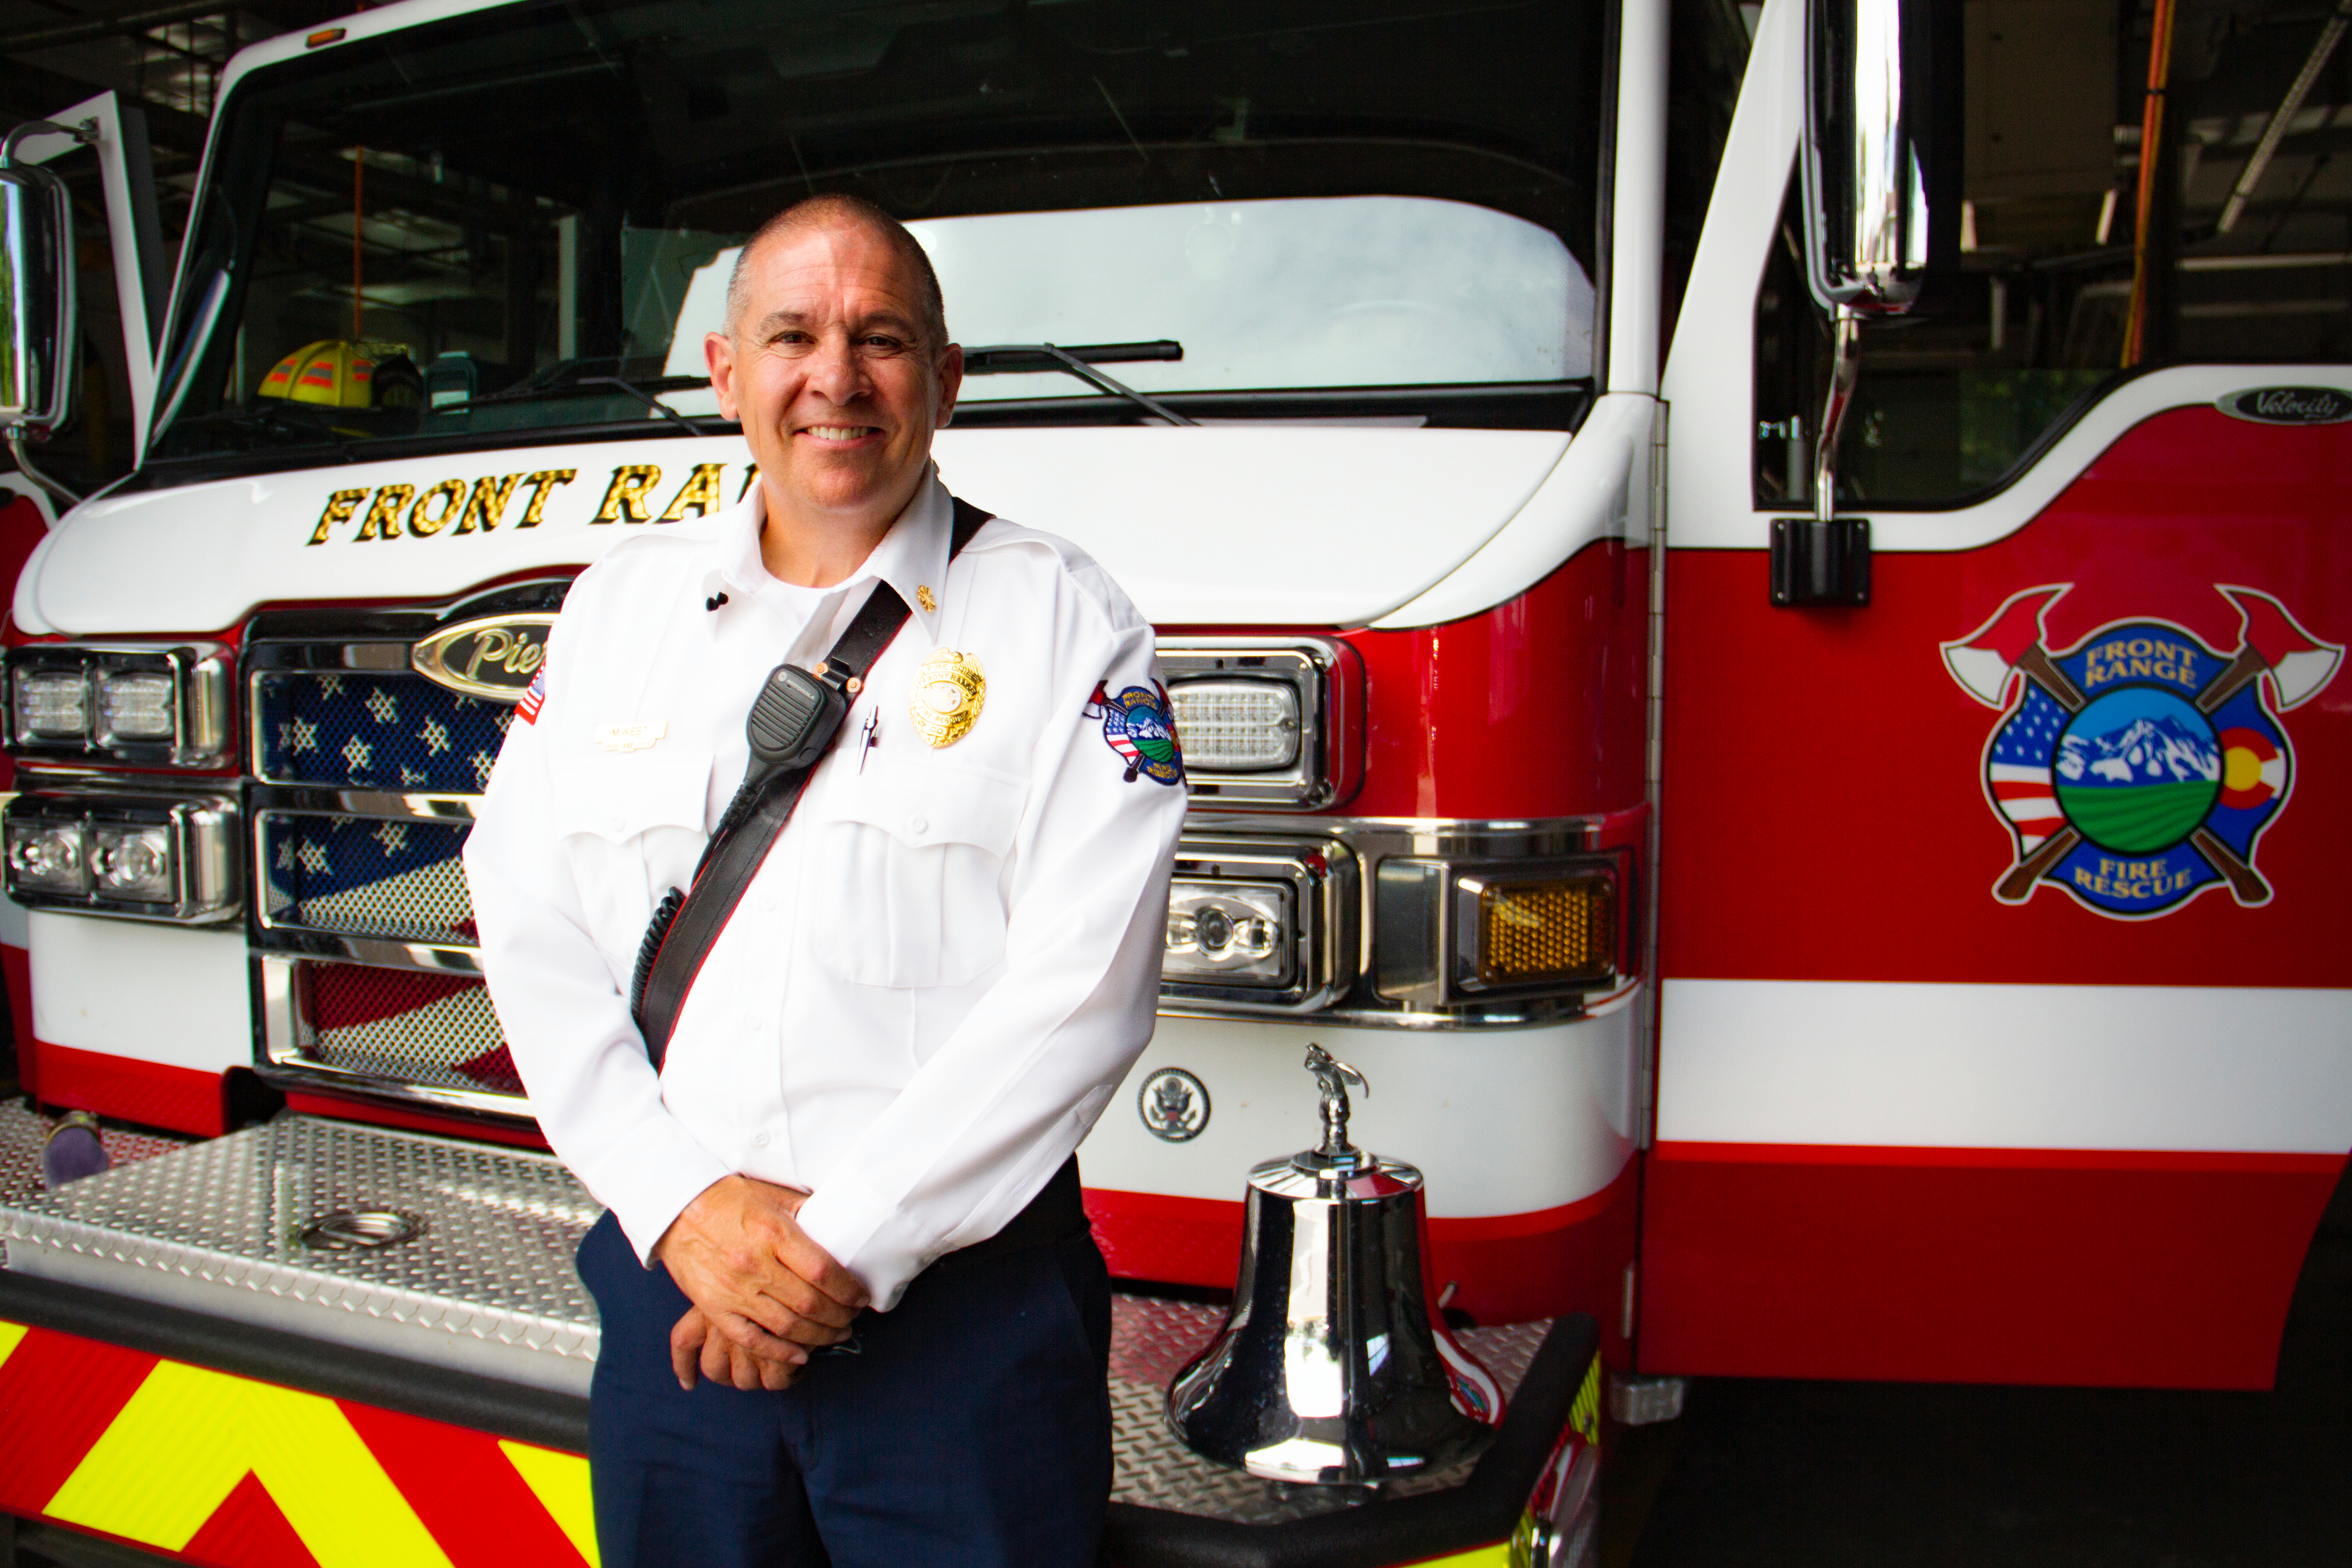 Front Range Fire Chief